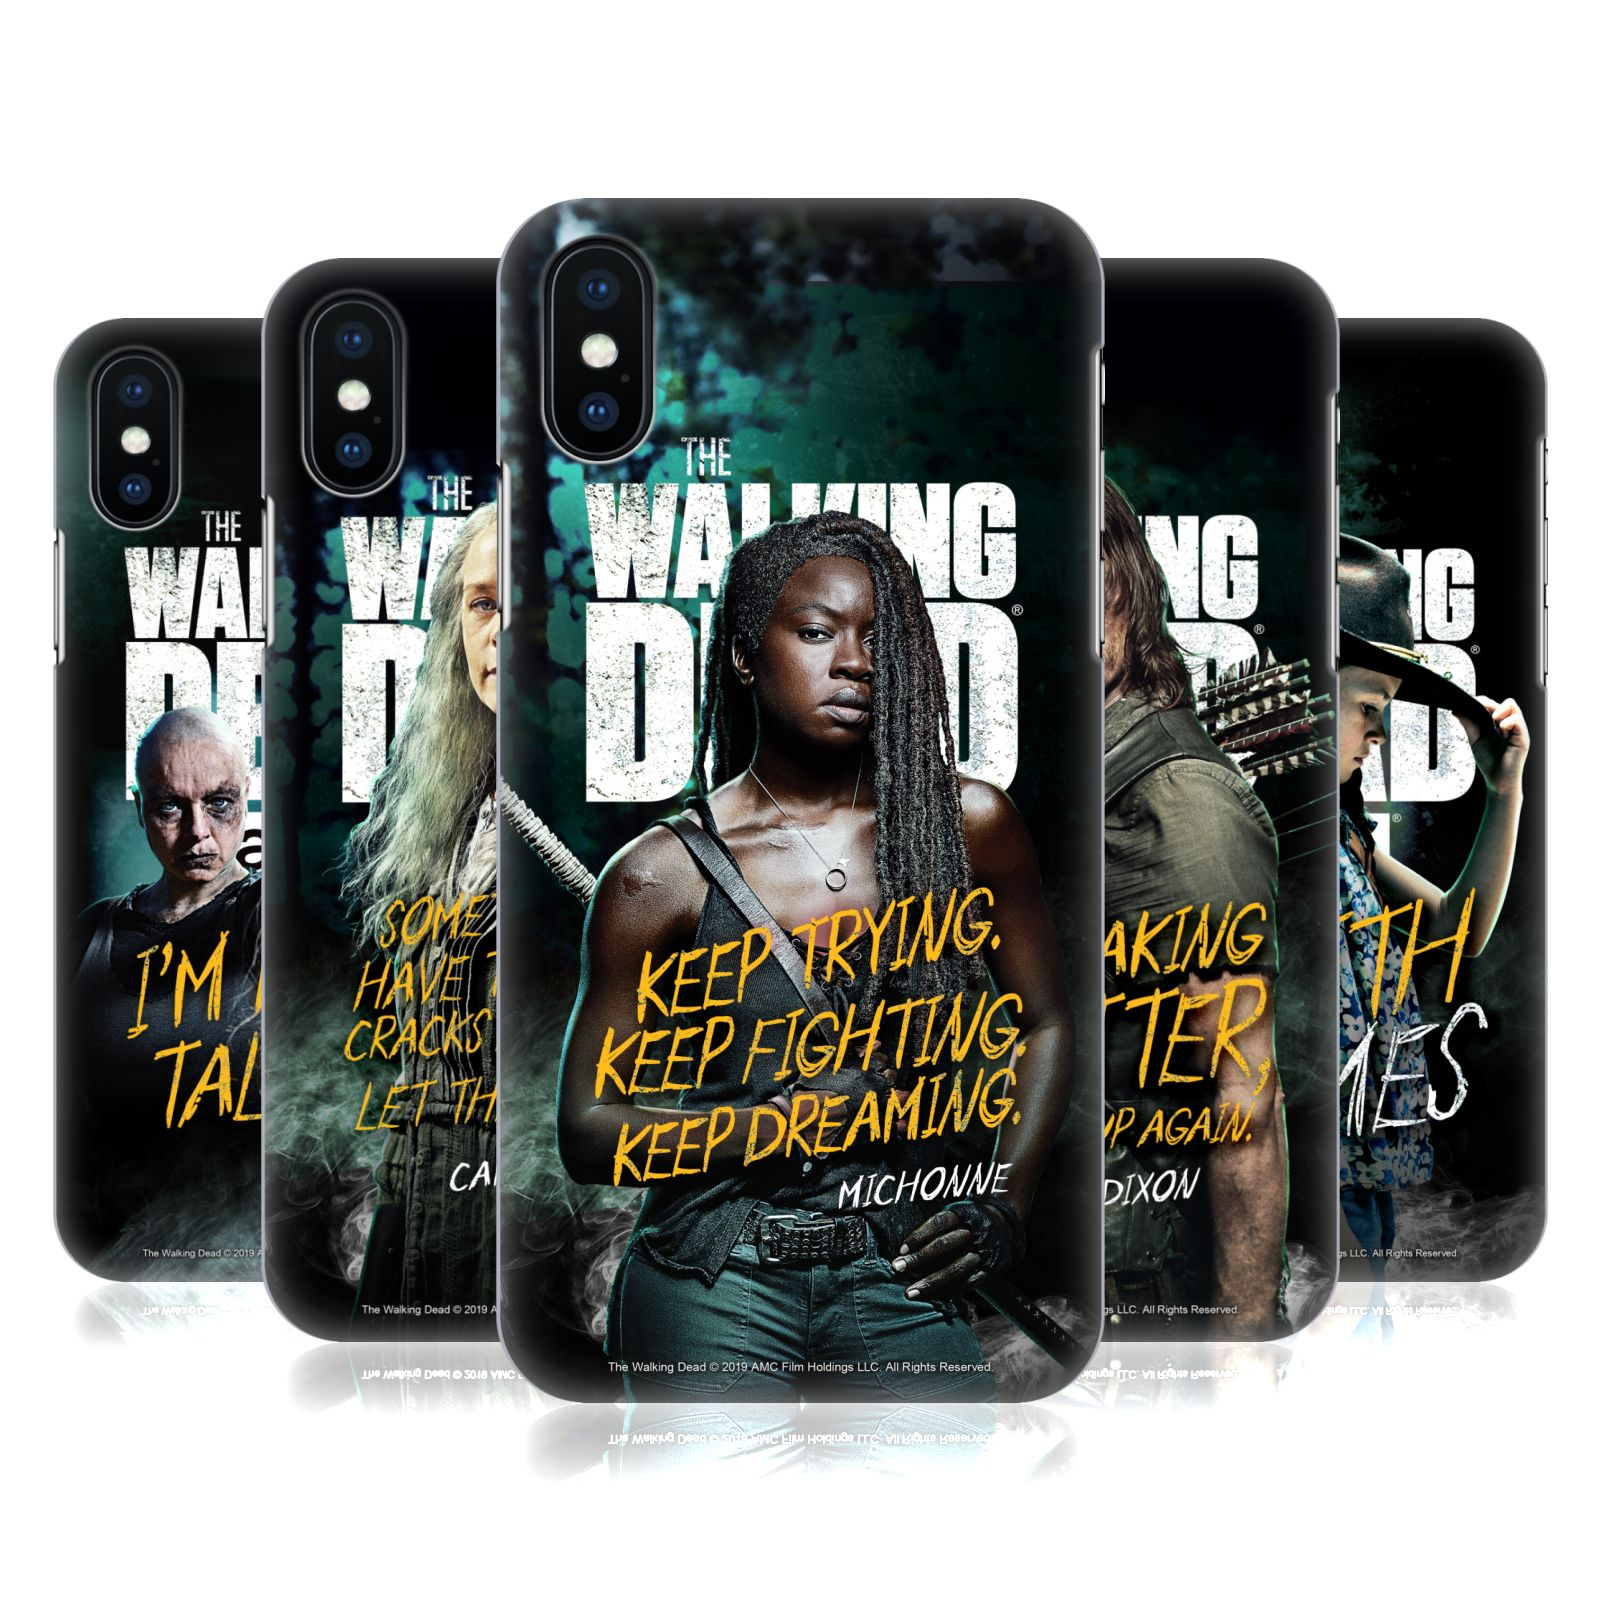 Official AMC The Walking Dead Season 9 Quotes